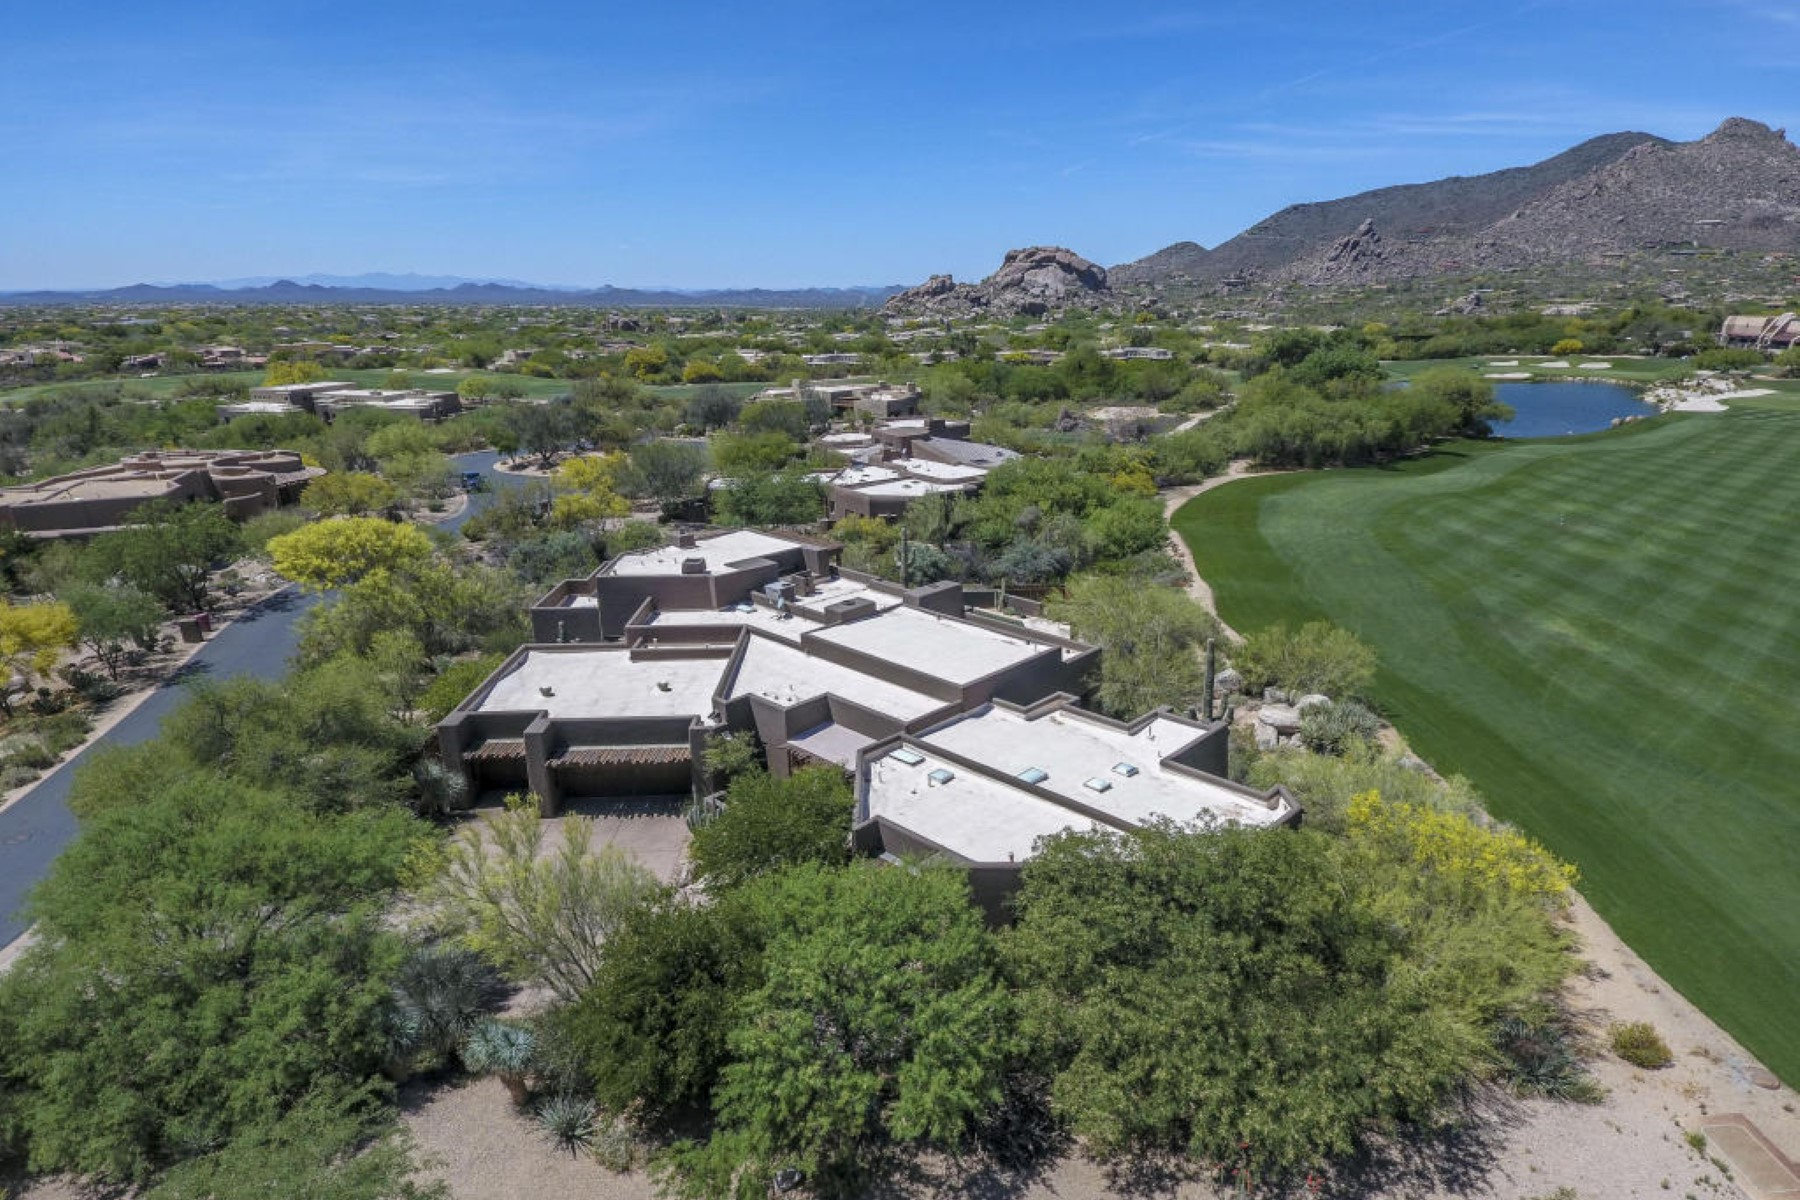 Single Family Home for Sale at Custom Terry Kilbane designed estate 7716 E Black Mountain Rd Scottsdale, Arizona, 85266 United States